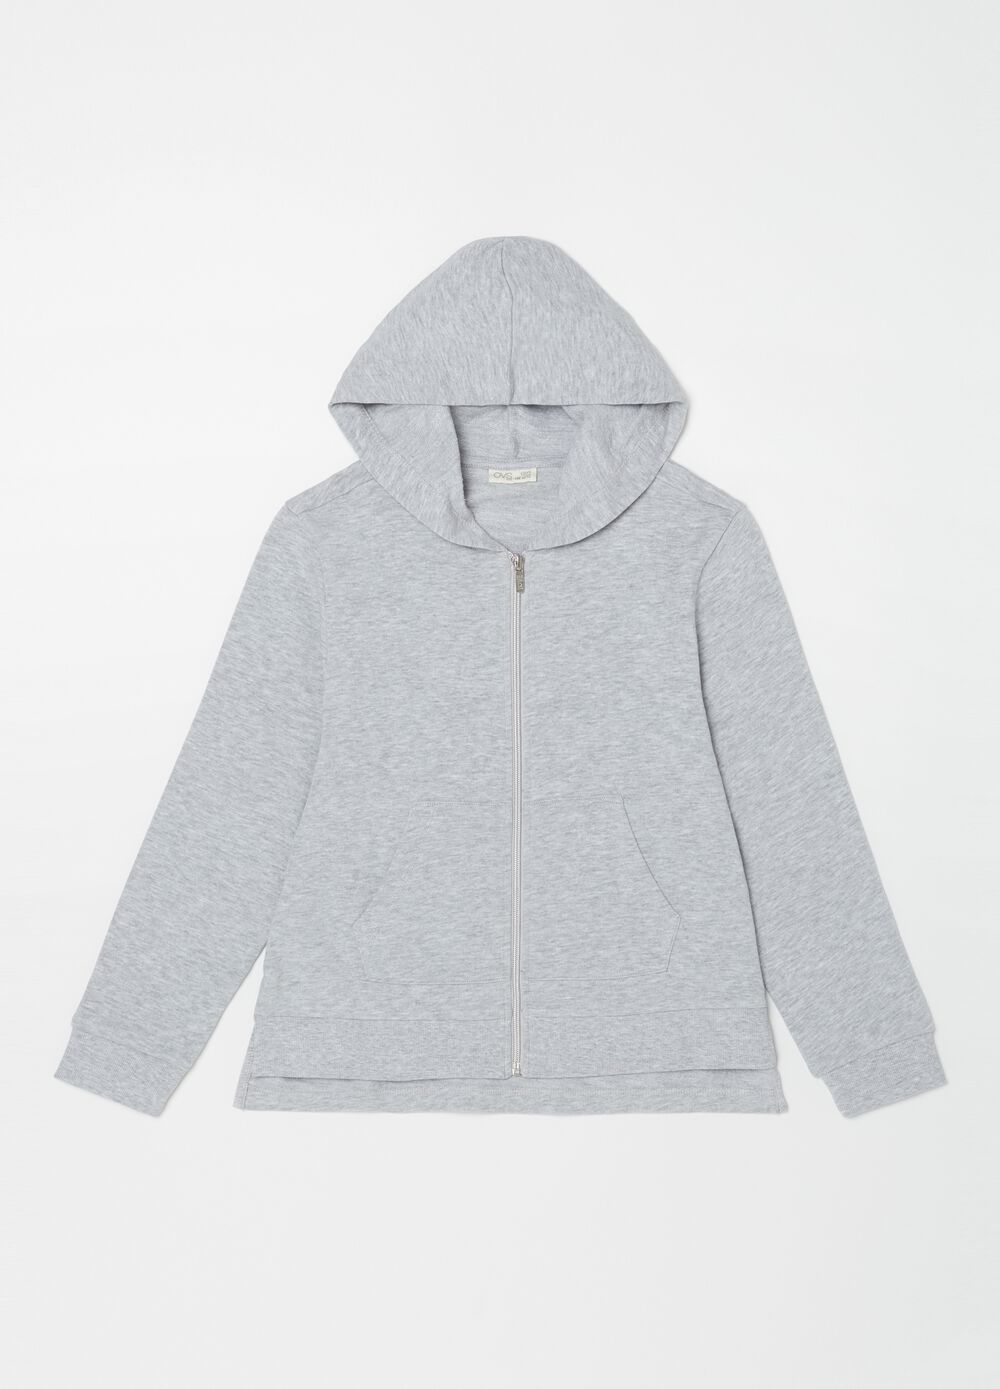 Mélange sweatshirt with hood and pockets